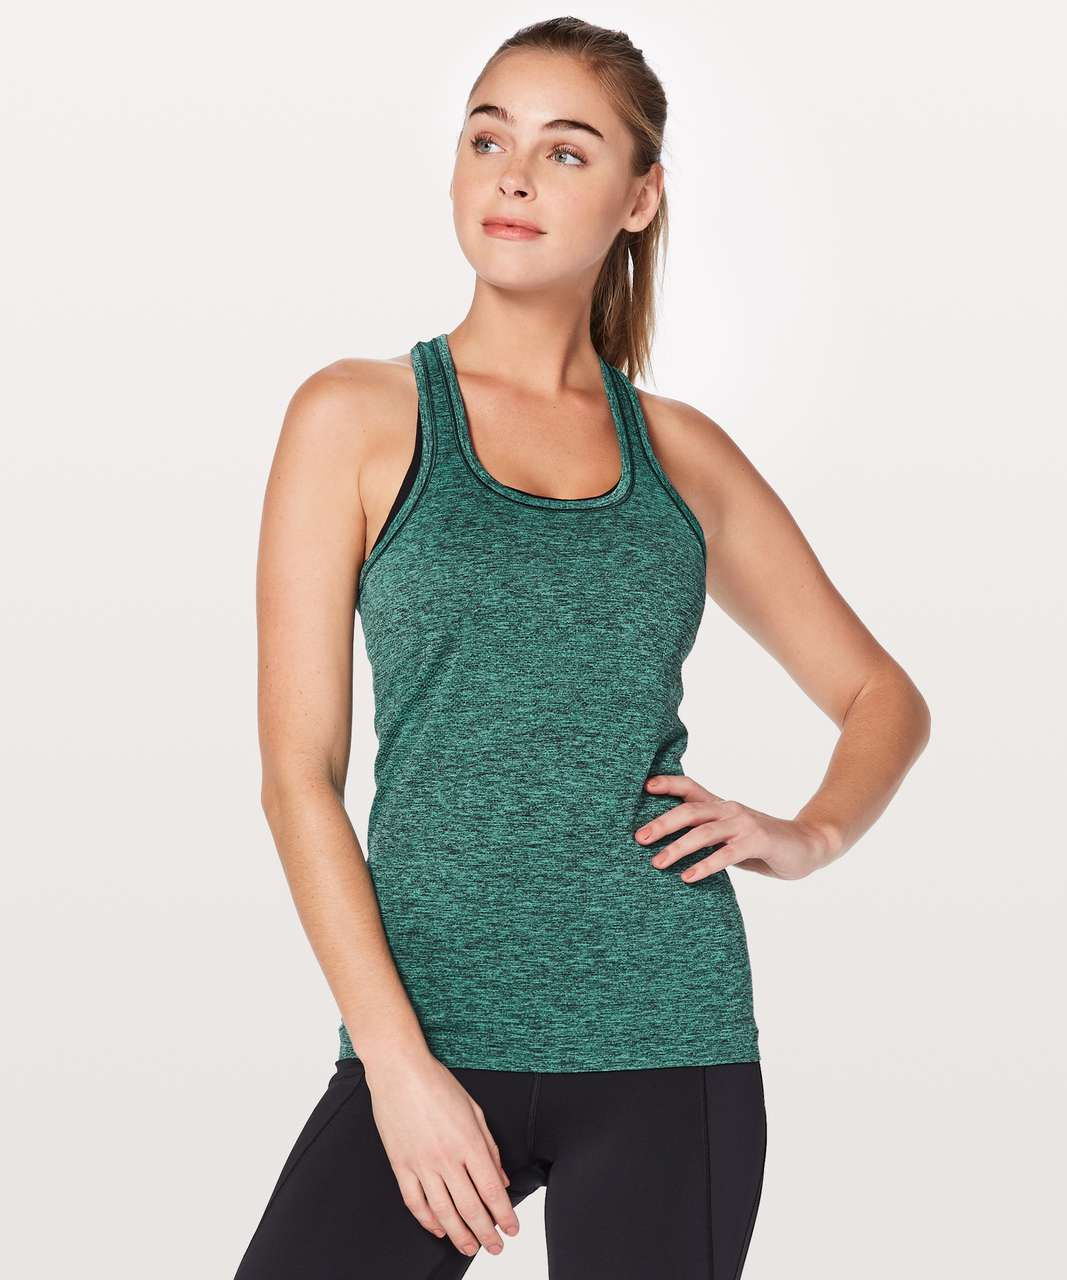 Lululemon Swiftly Tech Racerback - Eucalyptus / Black